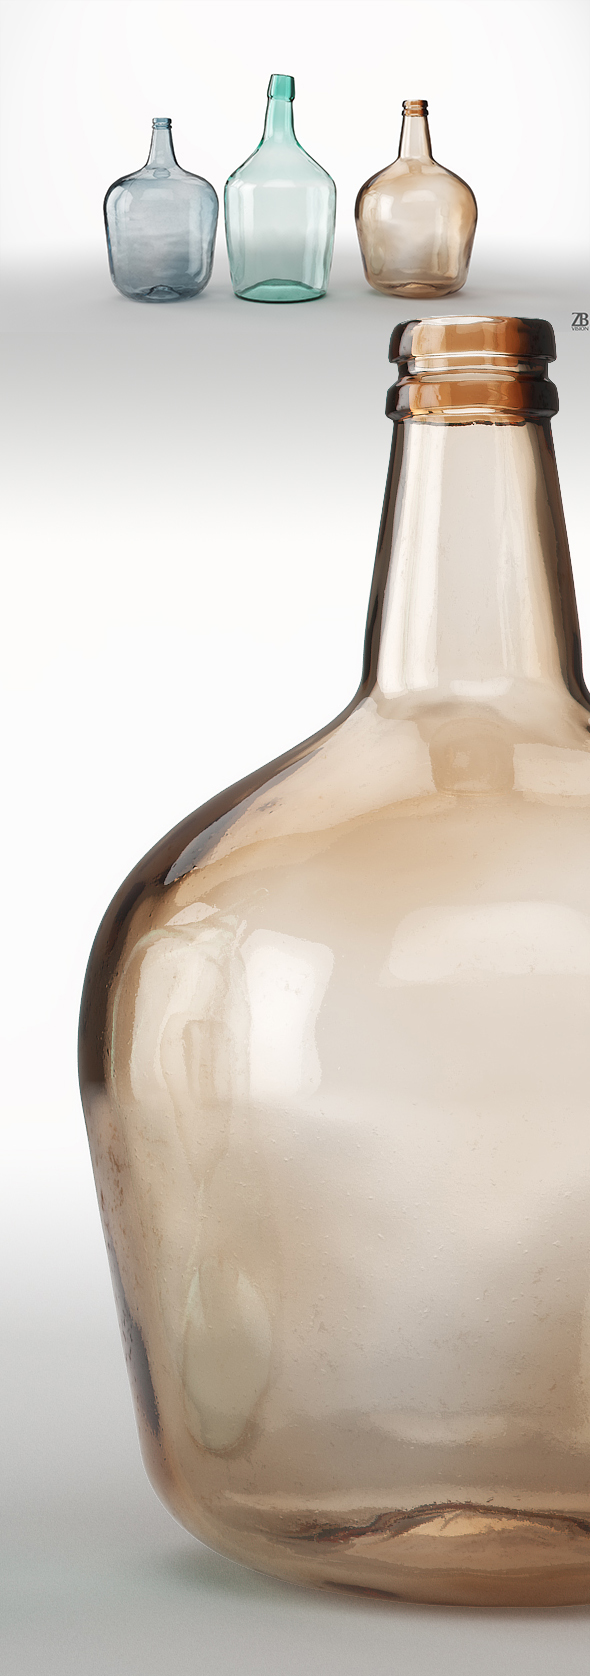 HK Living Carafe - 3DOcean Item for Sale